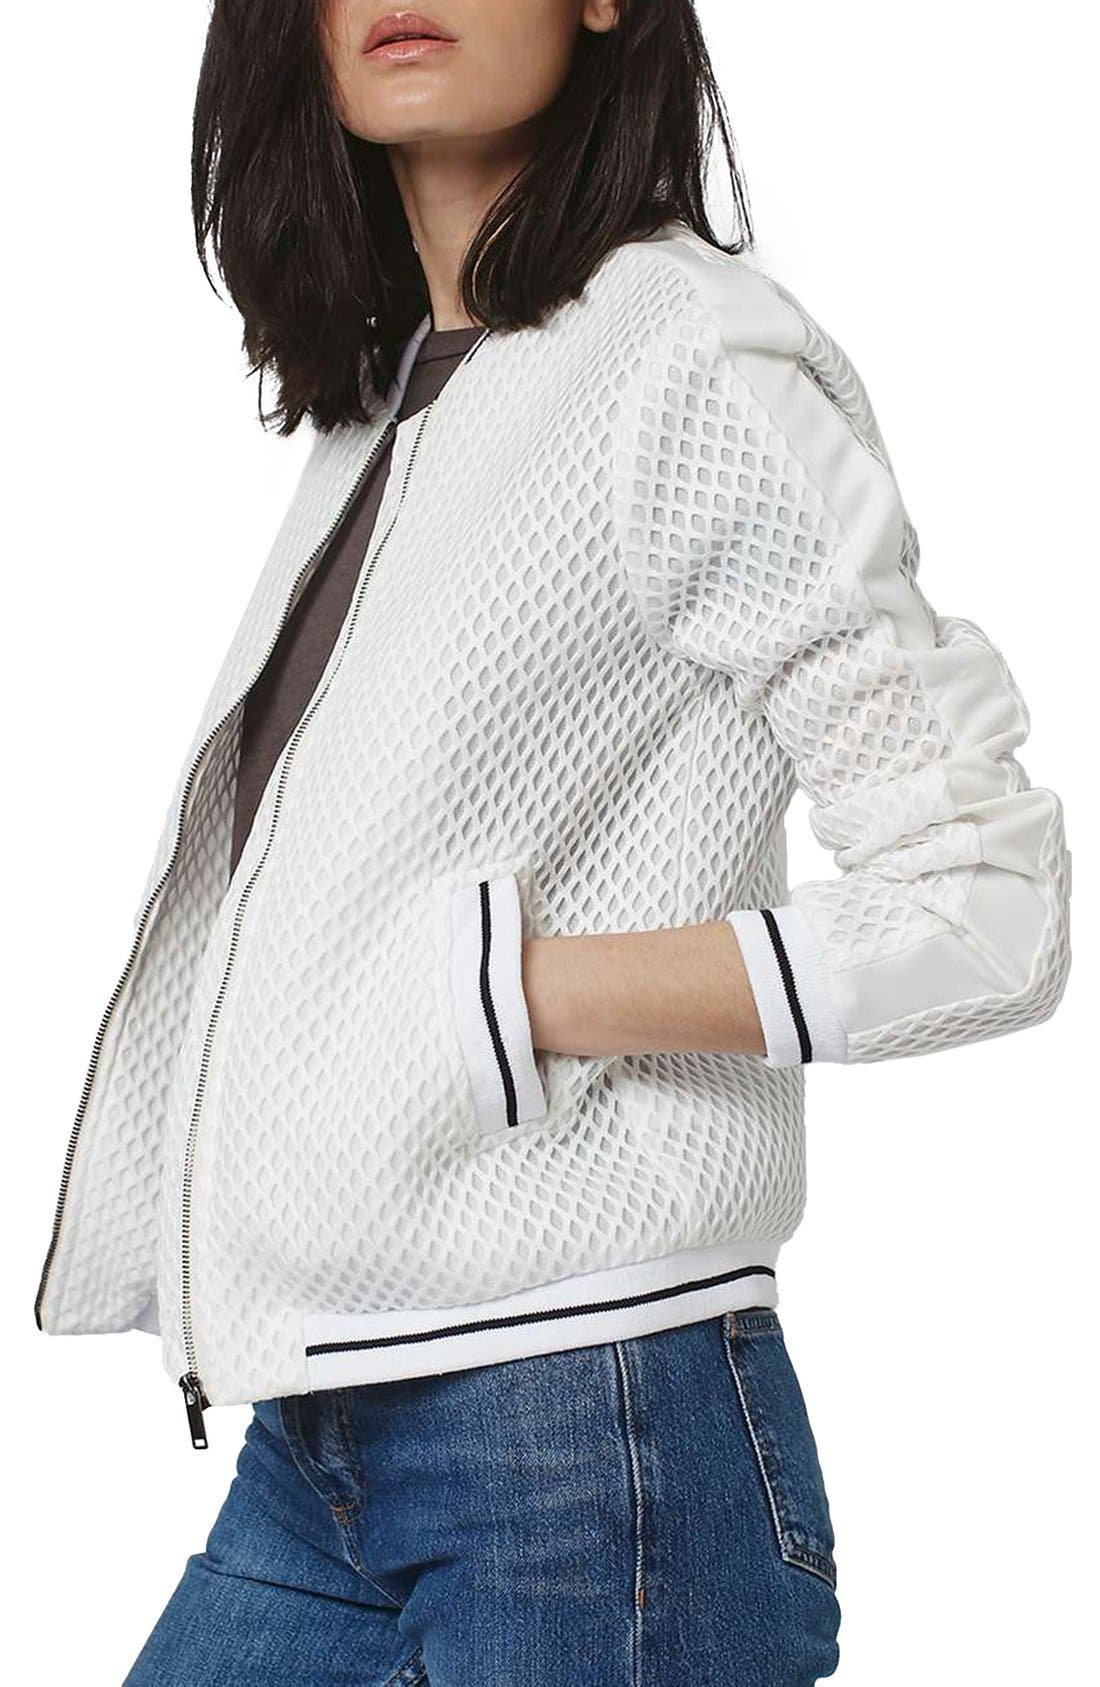 Diamond Airtex Bomber Jacket,                             Main thumbnail 1, color,                             Ivory